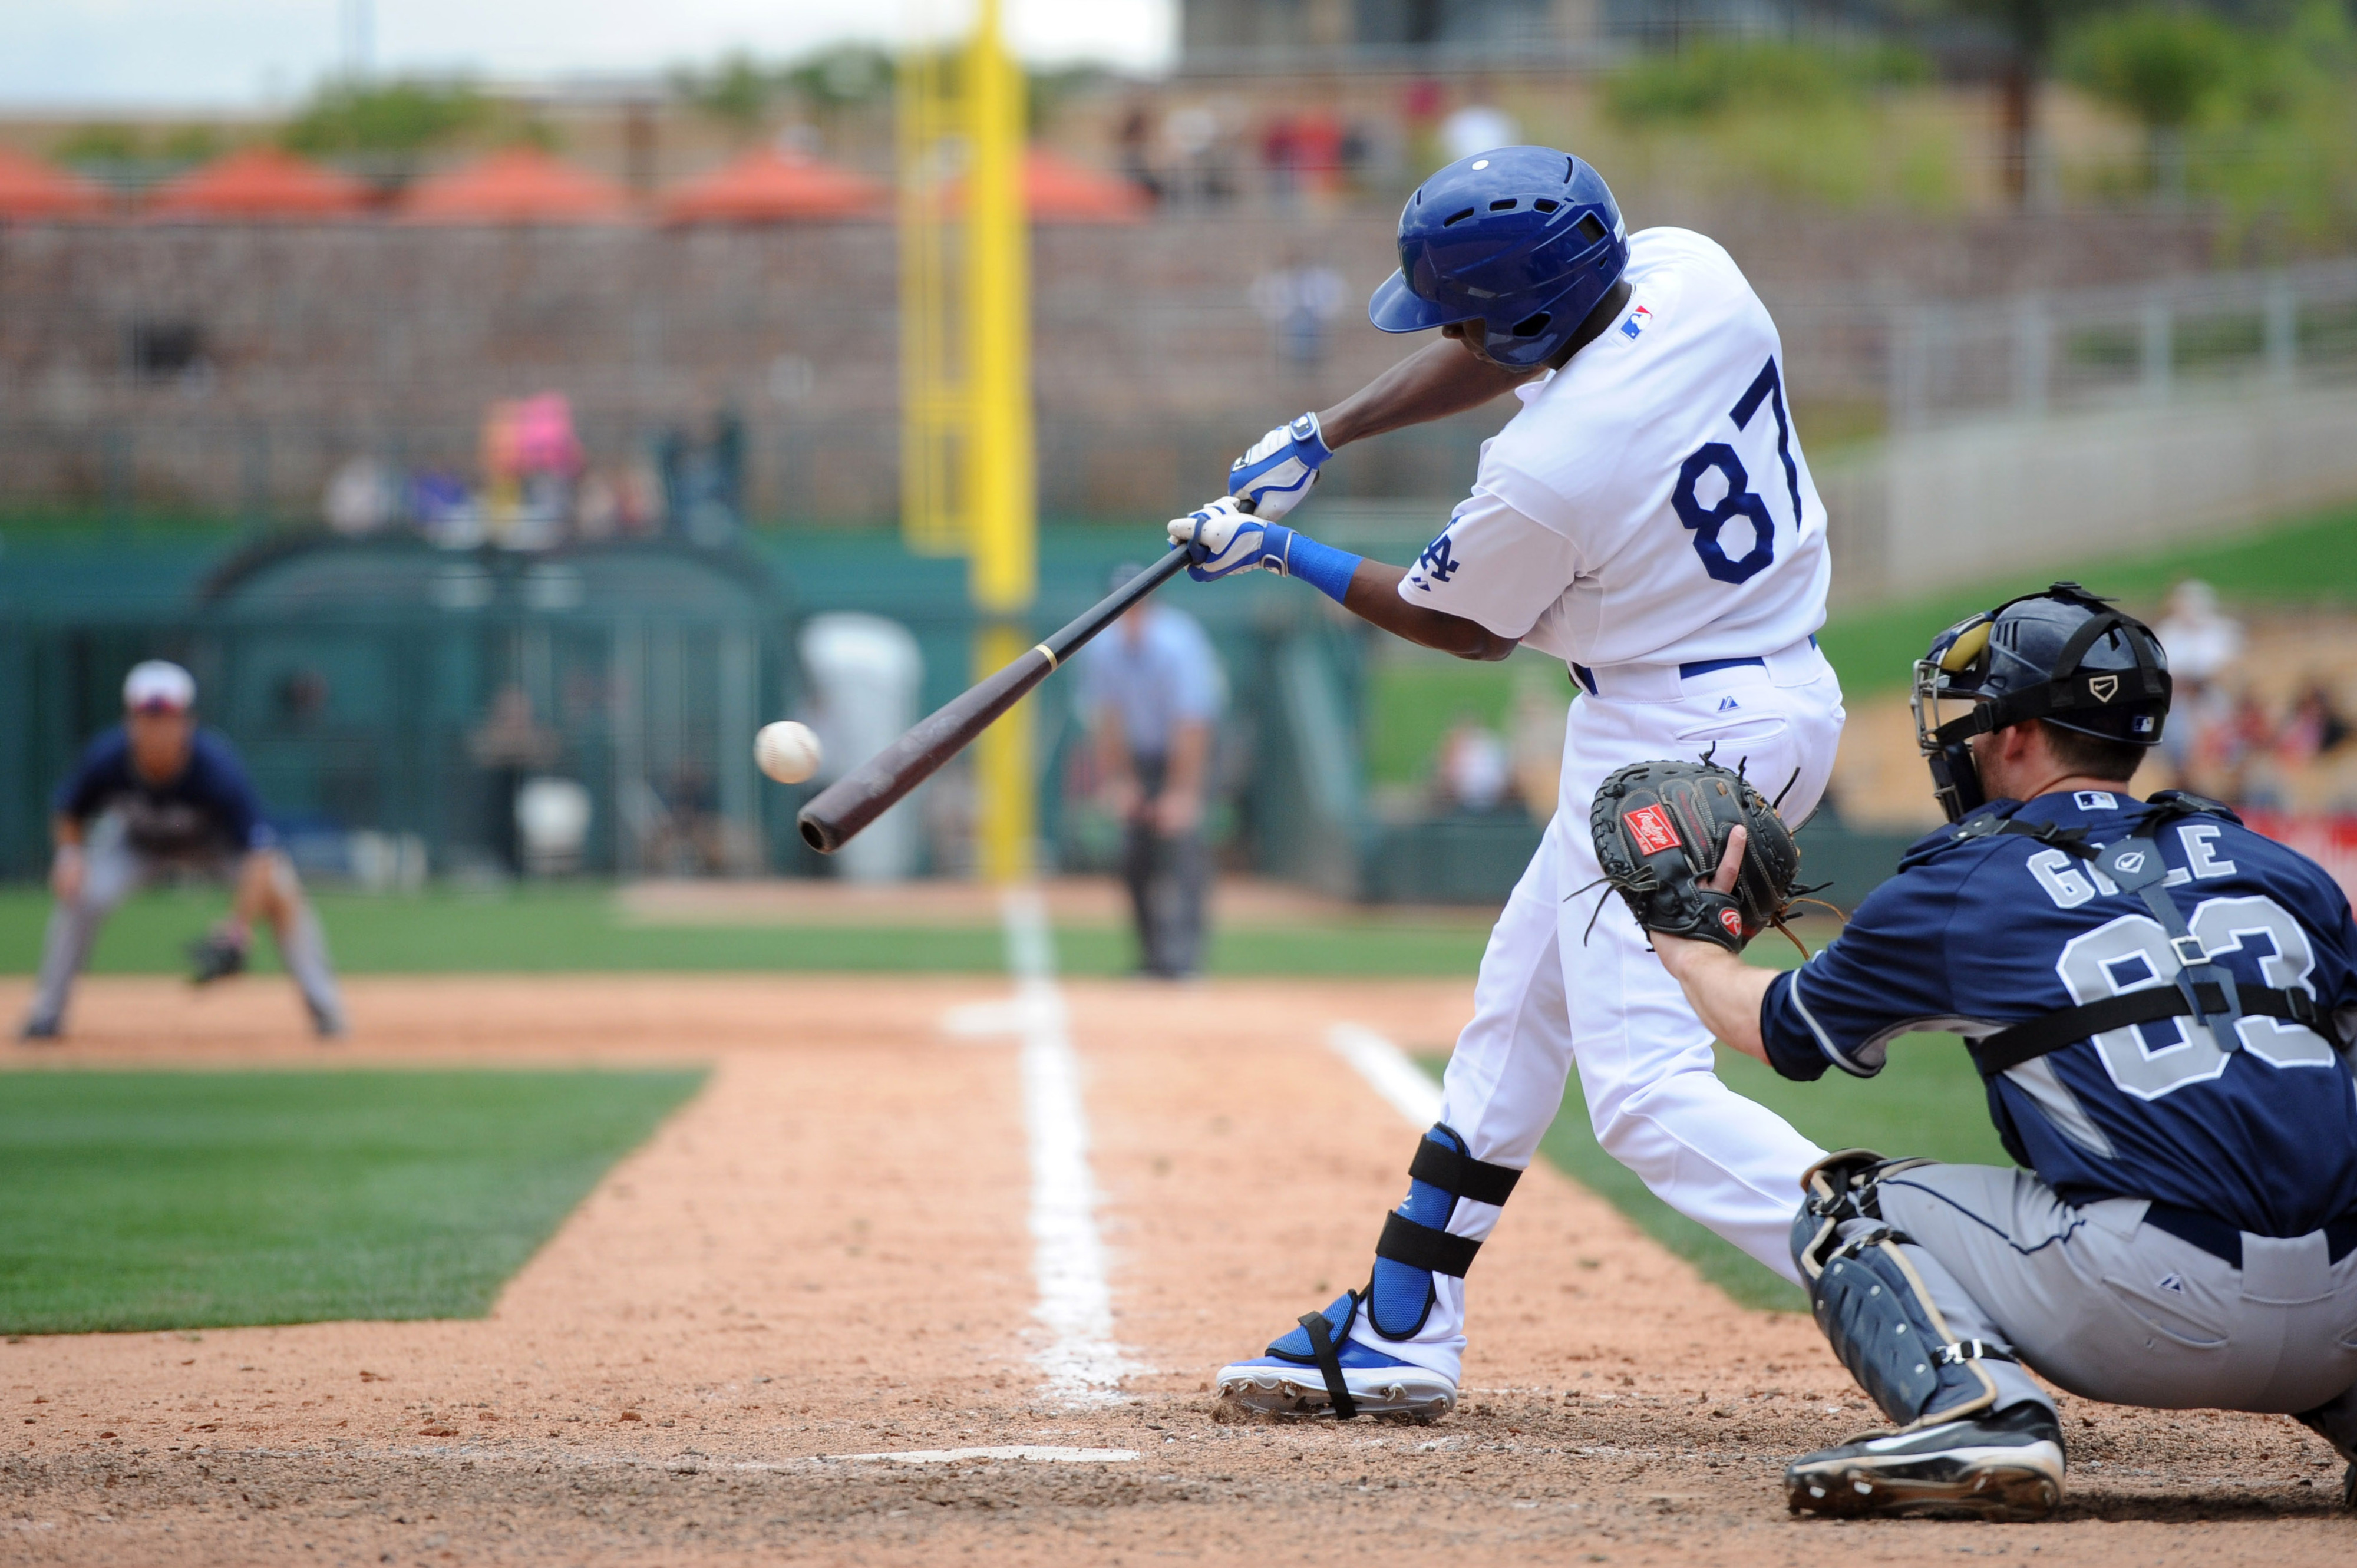 Darnell Sweeney has suited up with the major league team five times in the first seven Cactus League games. On the minor league side, he wears No. 15.